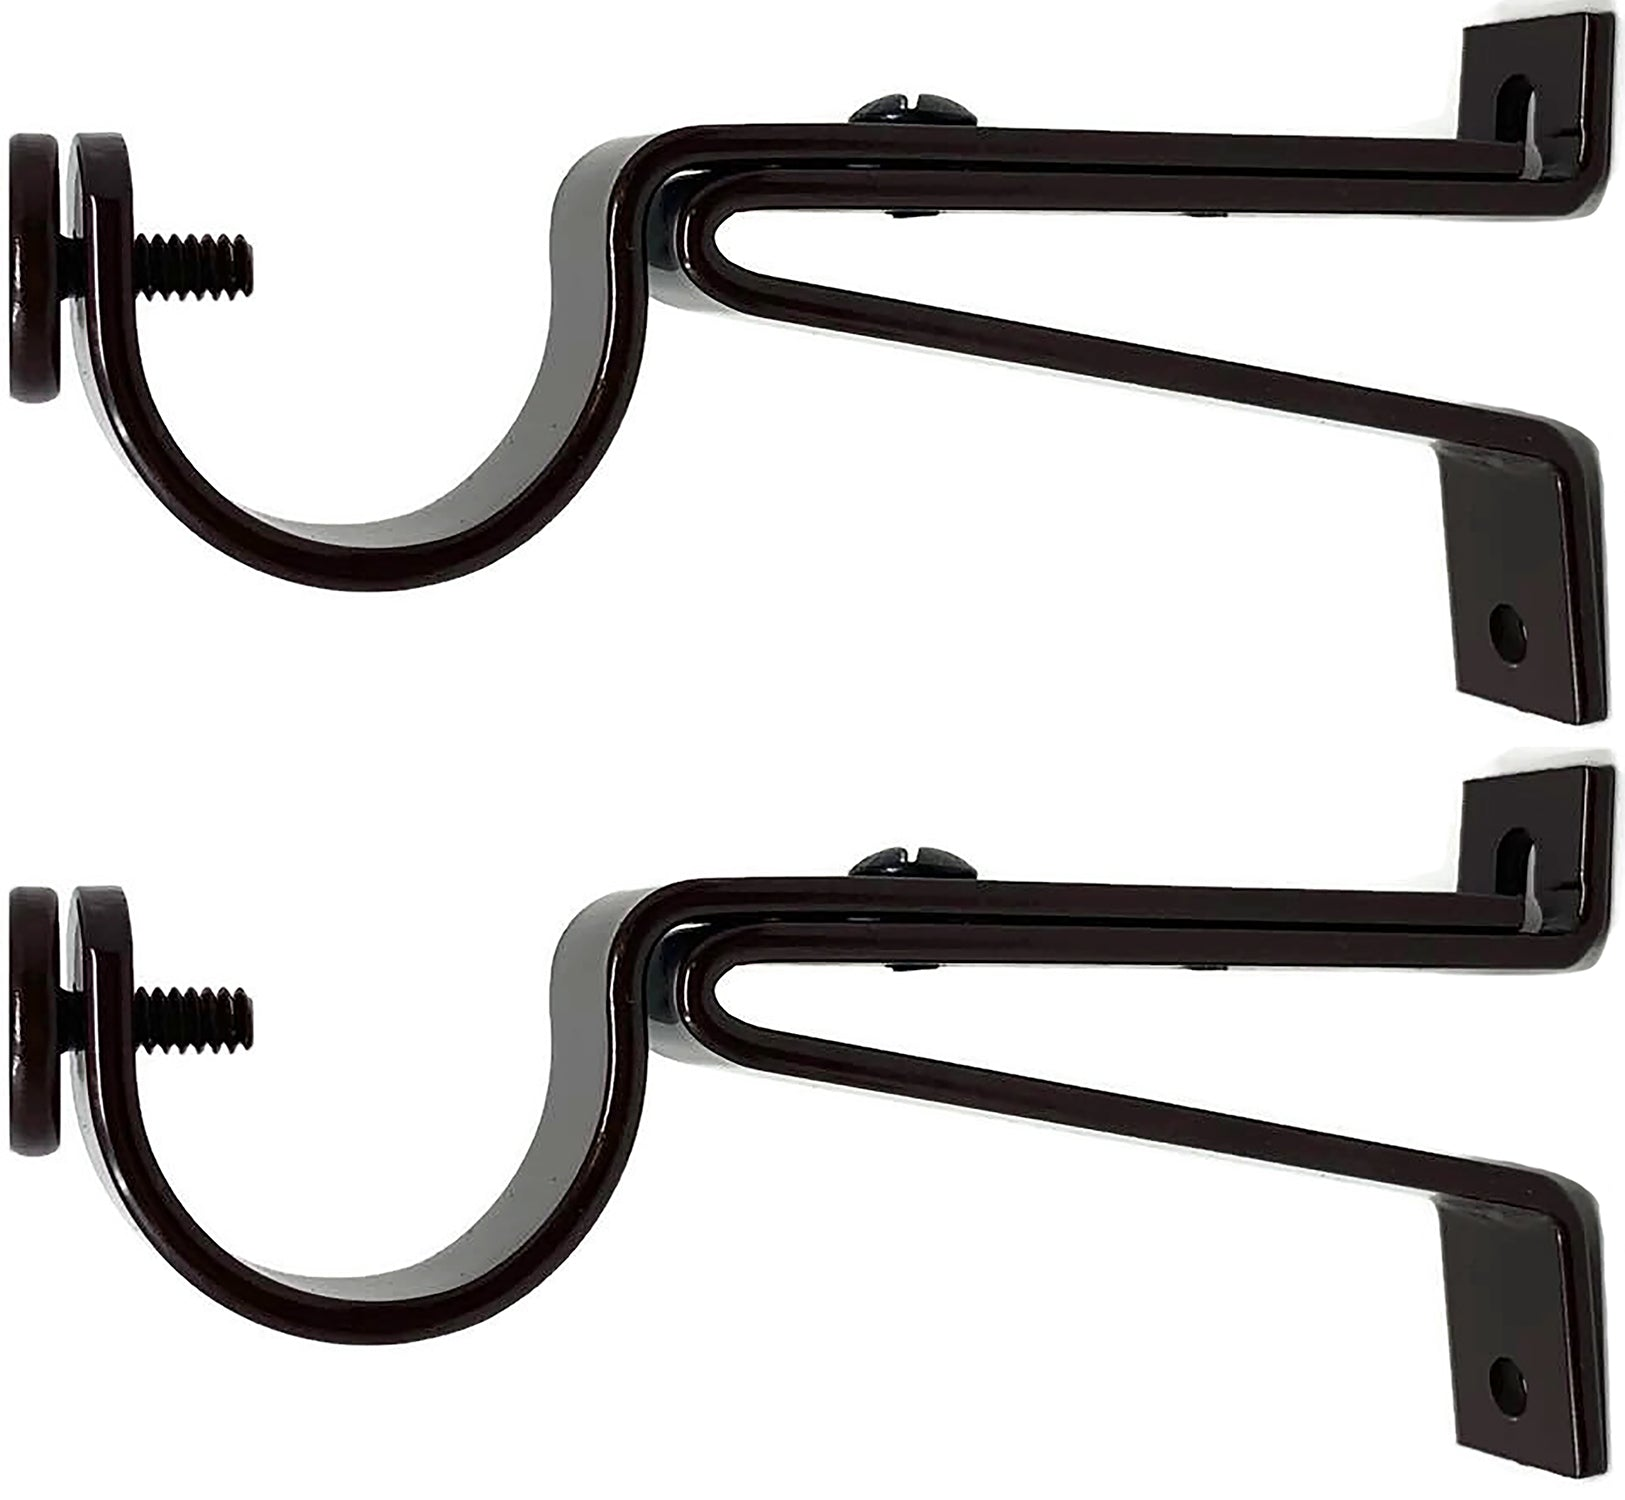 Urbanest Adjustable Curtain Rod Bracket, up to 1 1/8-inch Diameter Rods